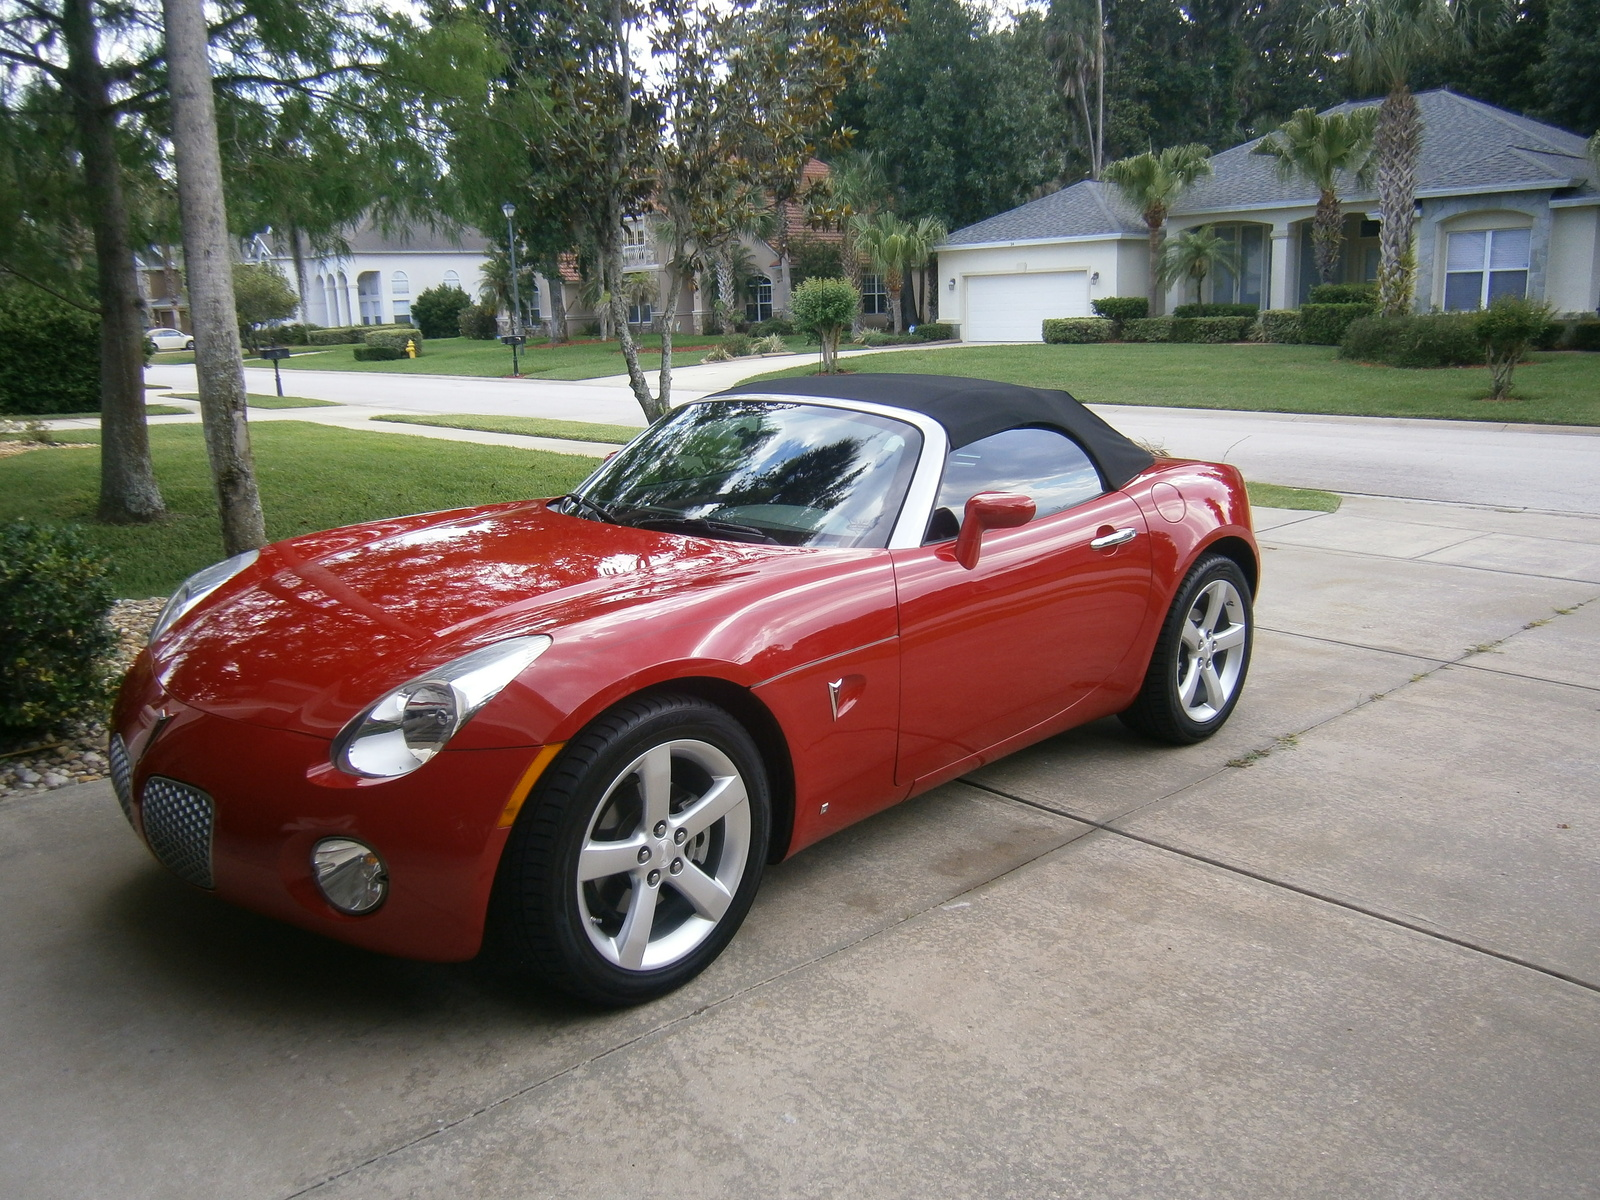 2006 pontiac solstice user reviews cargurus autos post. Black Bedroom Furniture Sets. Home Design Ideas